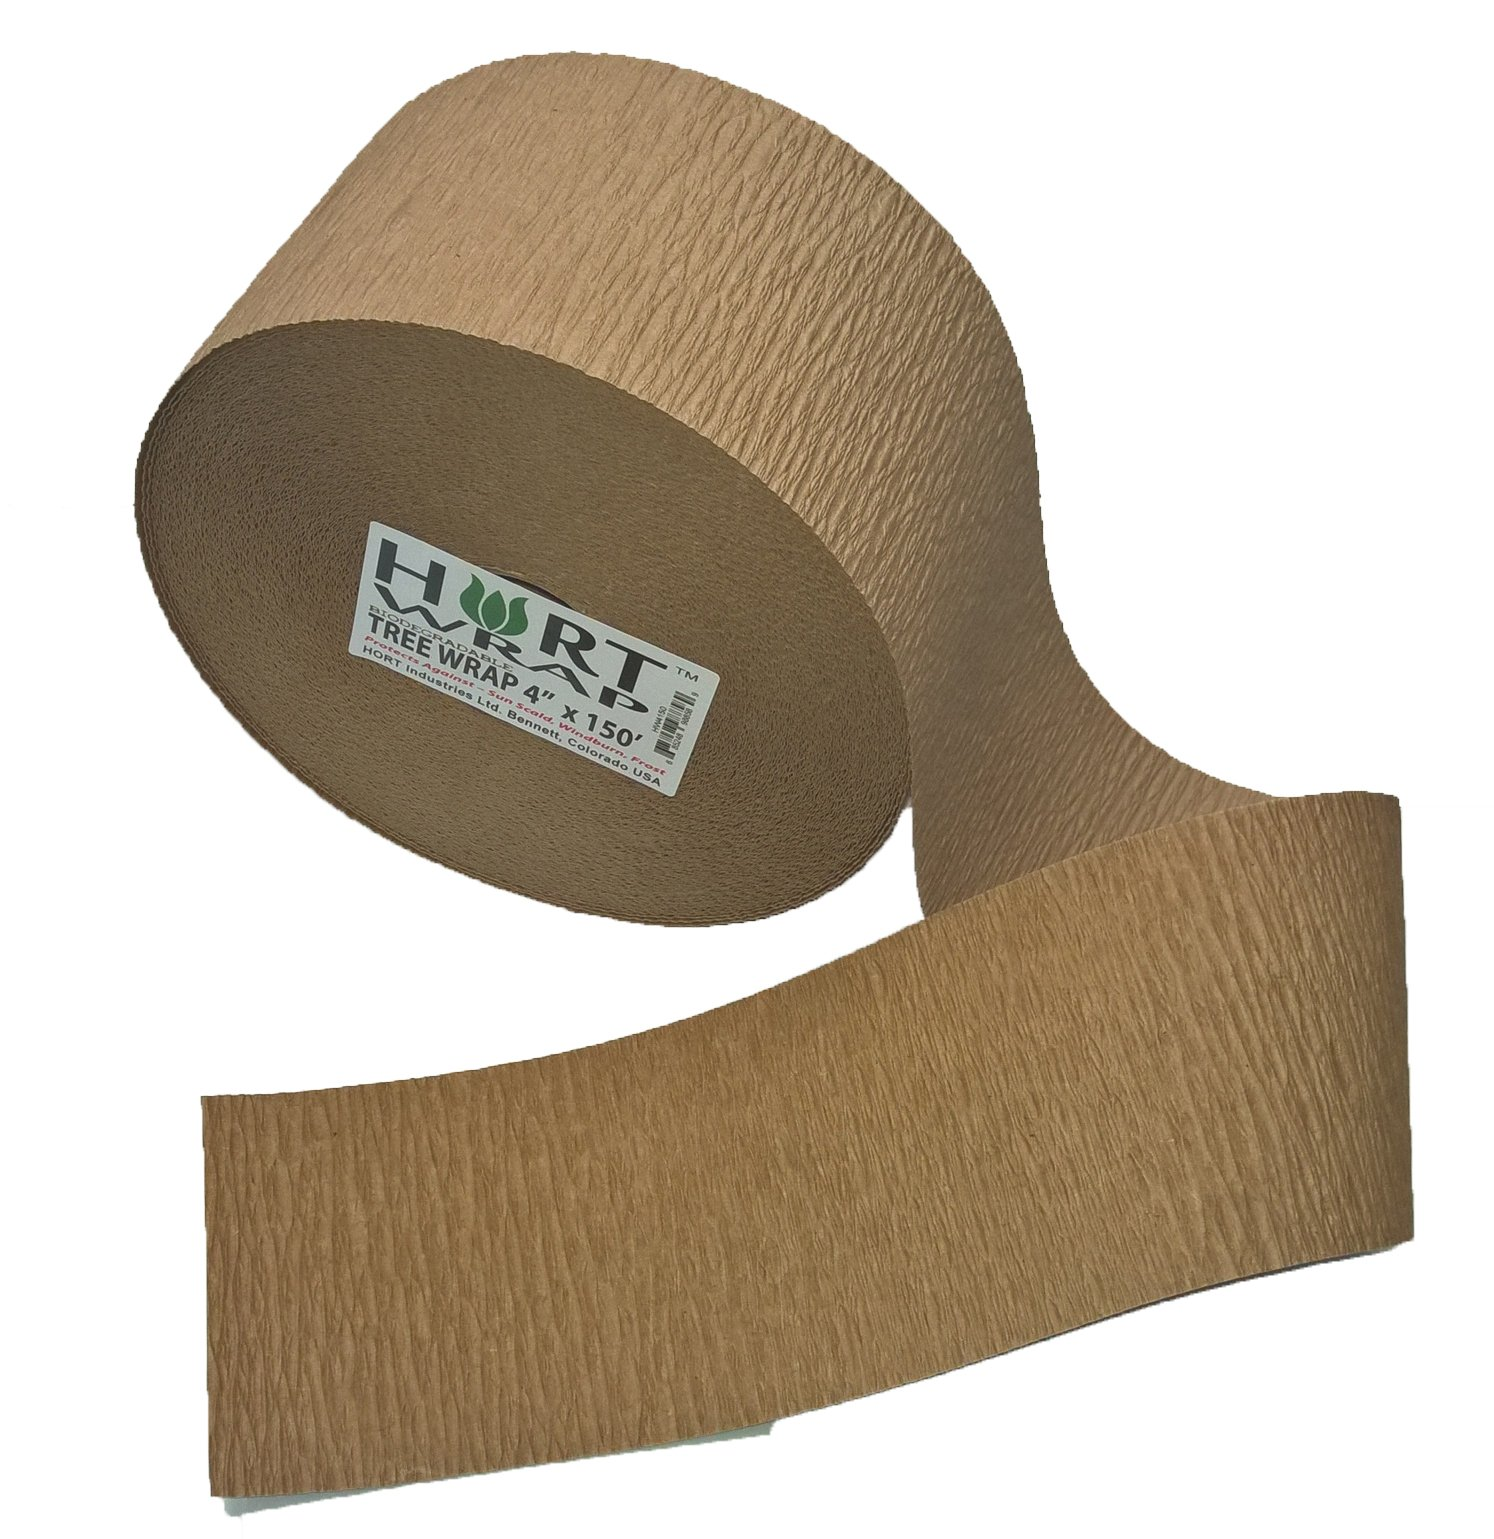 HORT Paper Tree Wrap 4'' x 150' roll, Commercial Grade by HORT